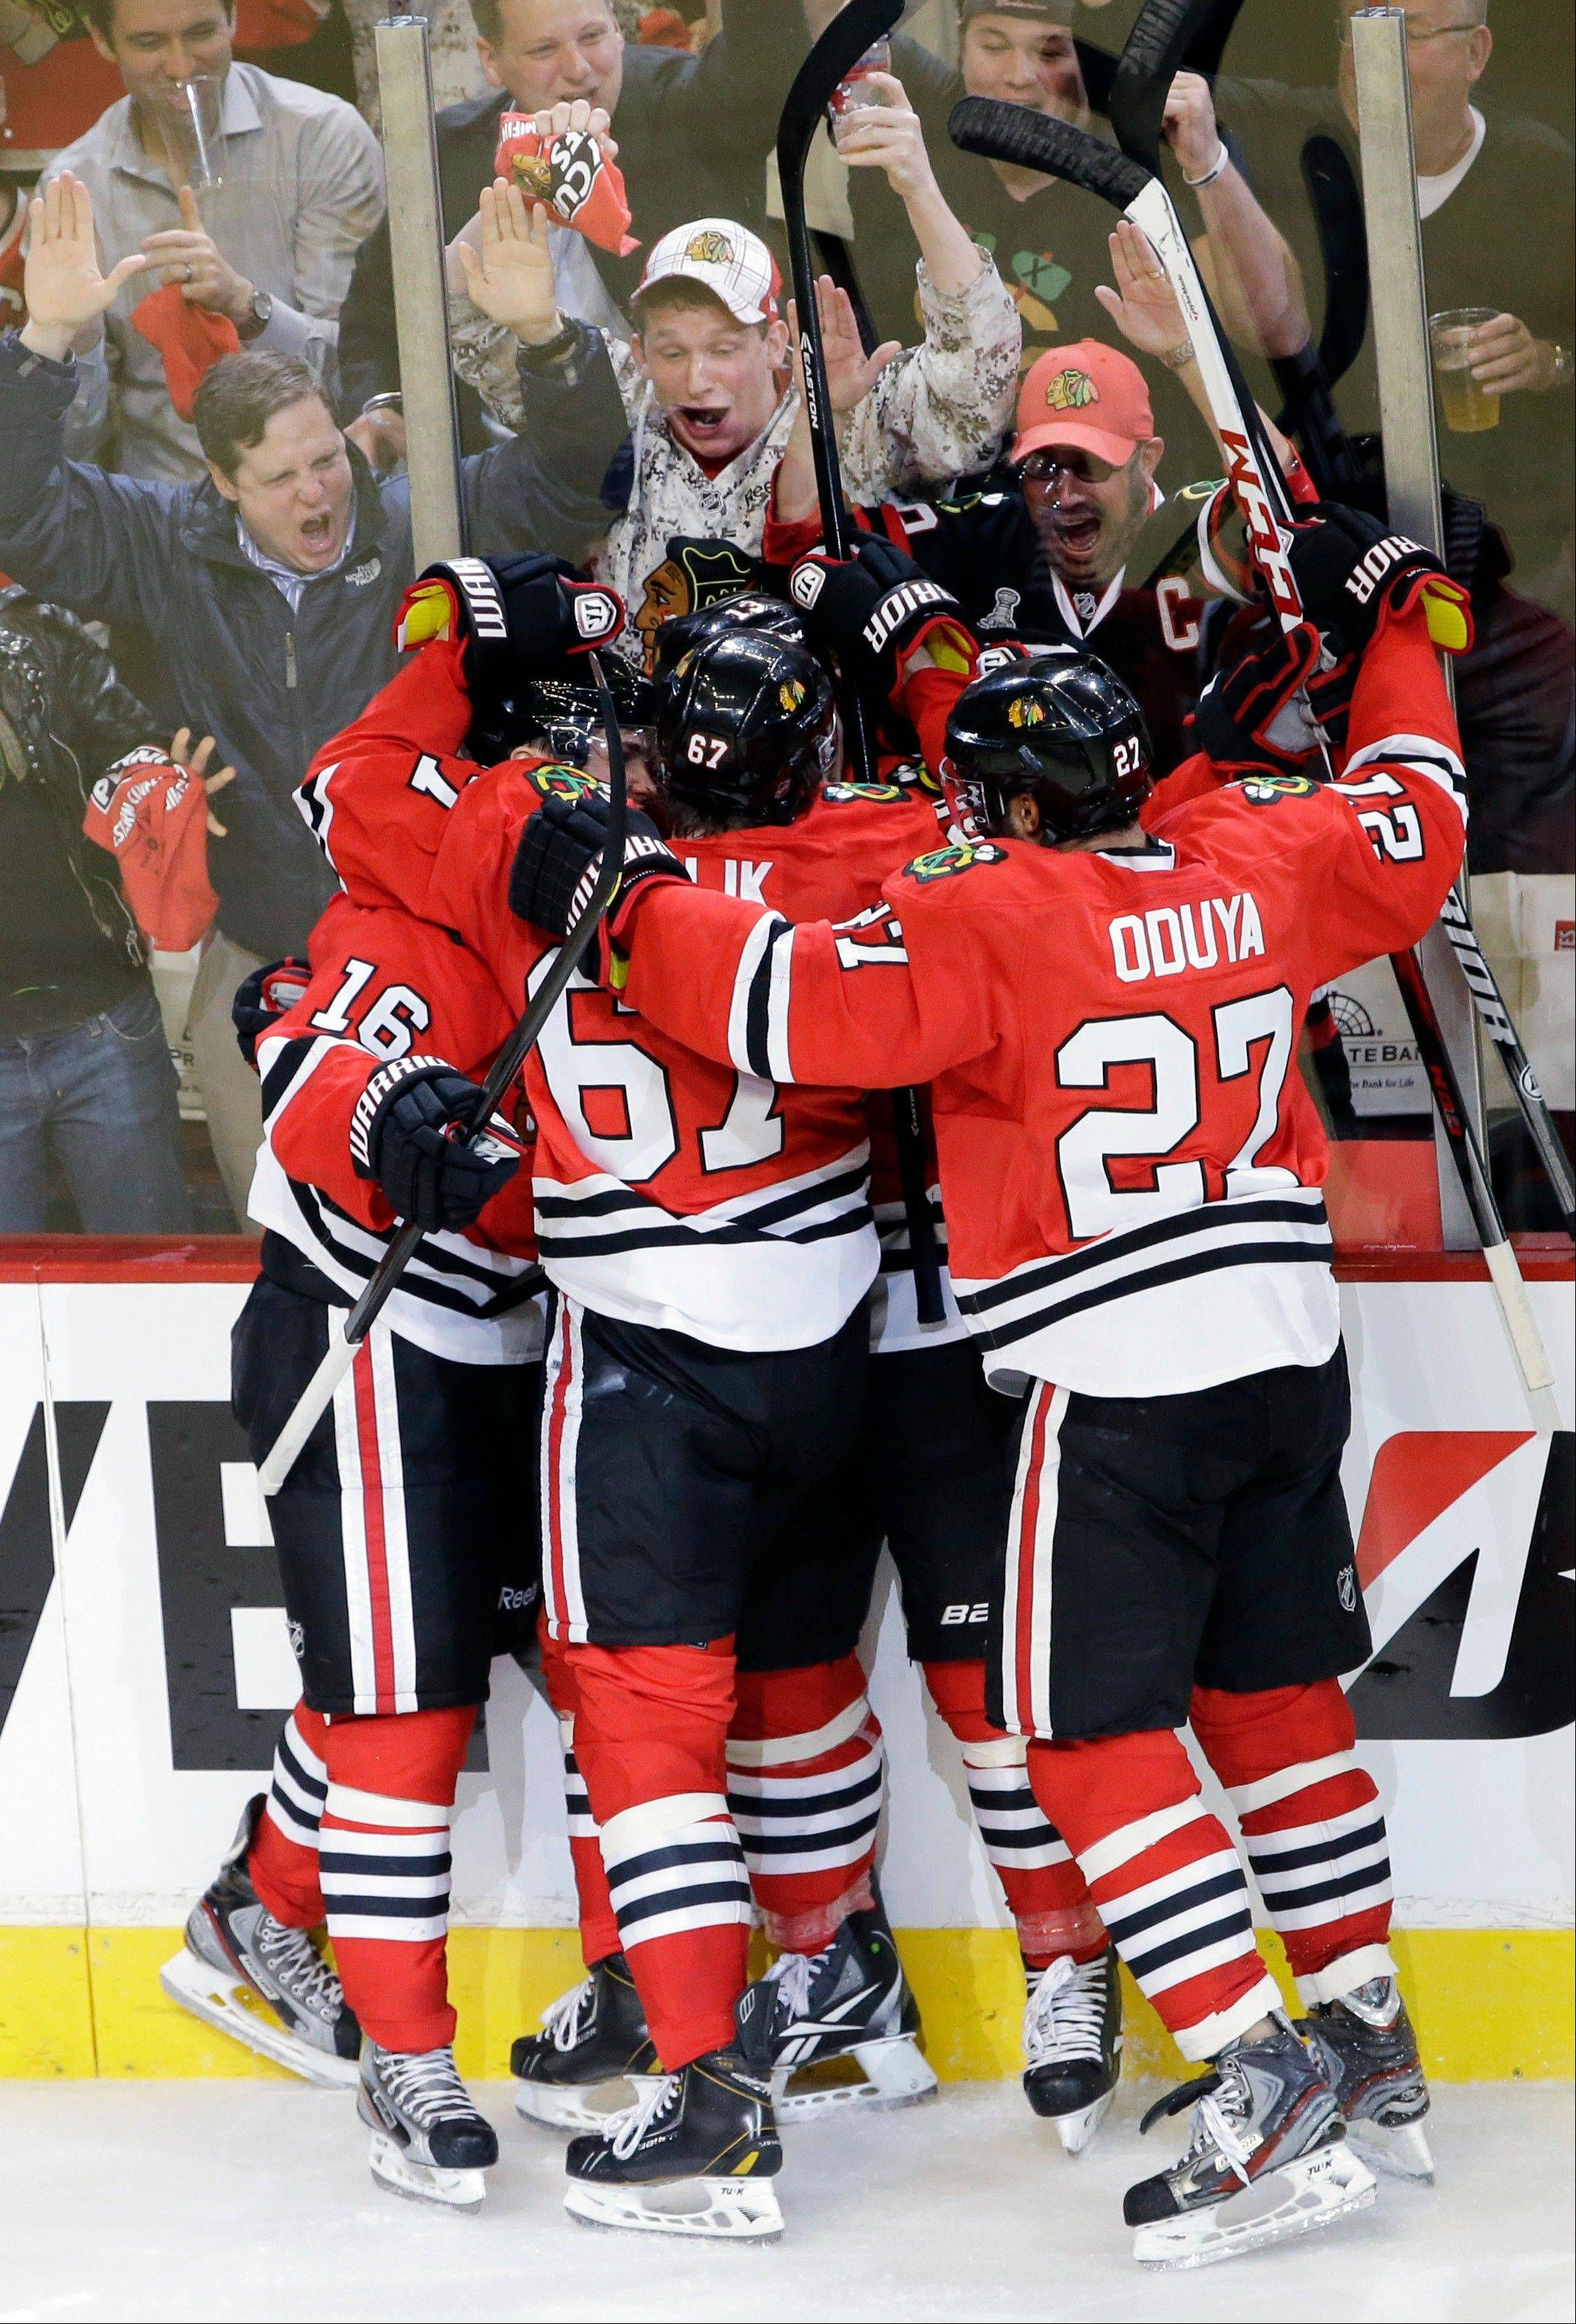 Chicago Blackhawks' Marcus Kruger (16), left, celebrates with teammates after scoring a goal during the third period of Game 1 of an NHL hockey playoffs Western Conference semifinal against the Detroit Red Wings Wednesday at the United Center.